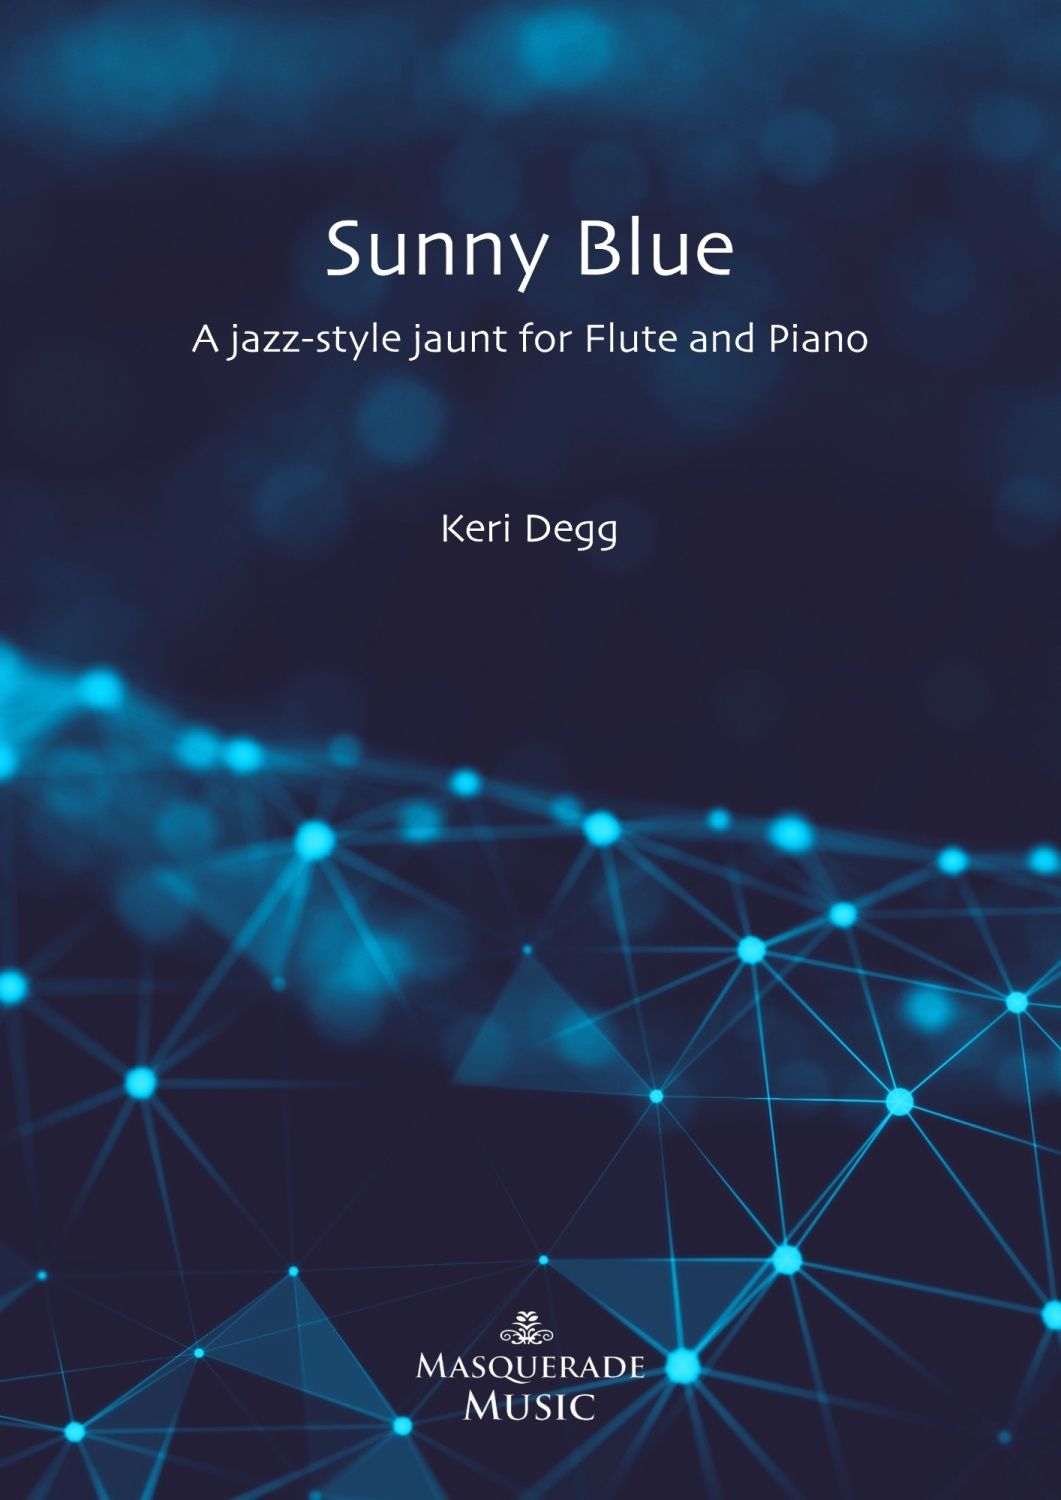 Sunny Blue (for Flute in C & Piano) by Keri Degg PRE-ORDER